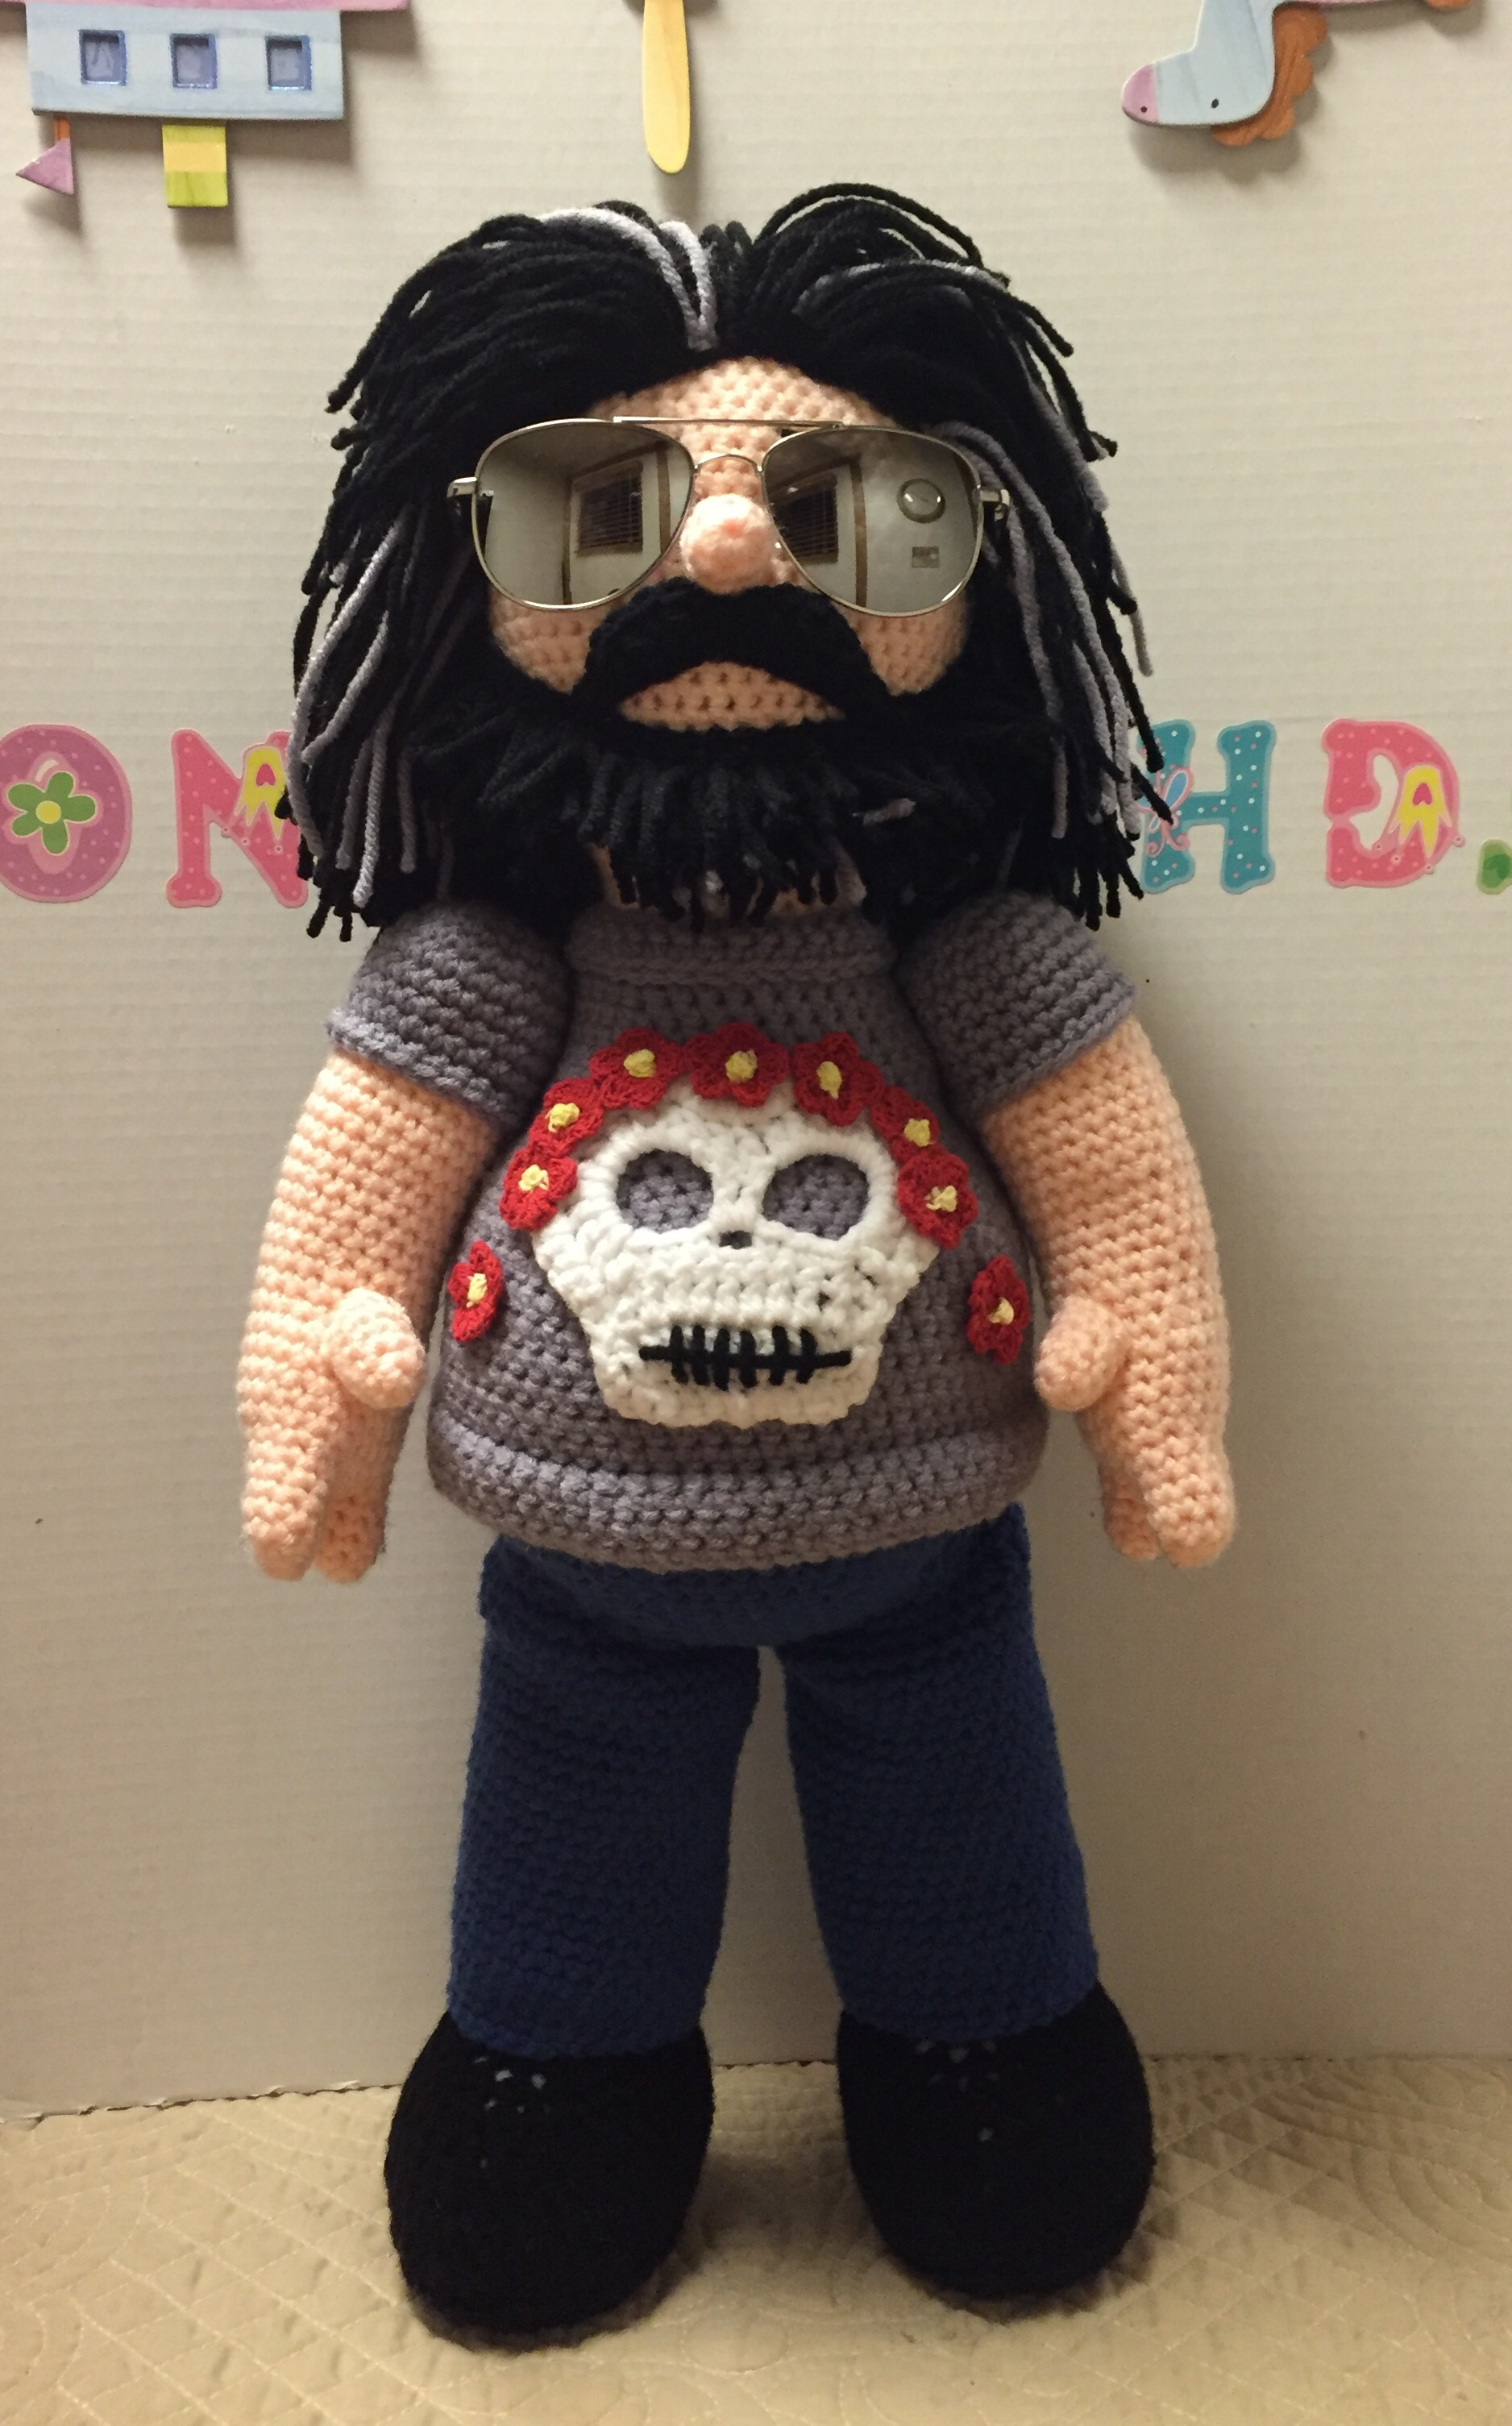 She Crocheted a Jerry Garcia Amigurumi For Family Friend Who's a Deadhead!